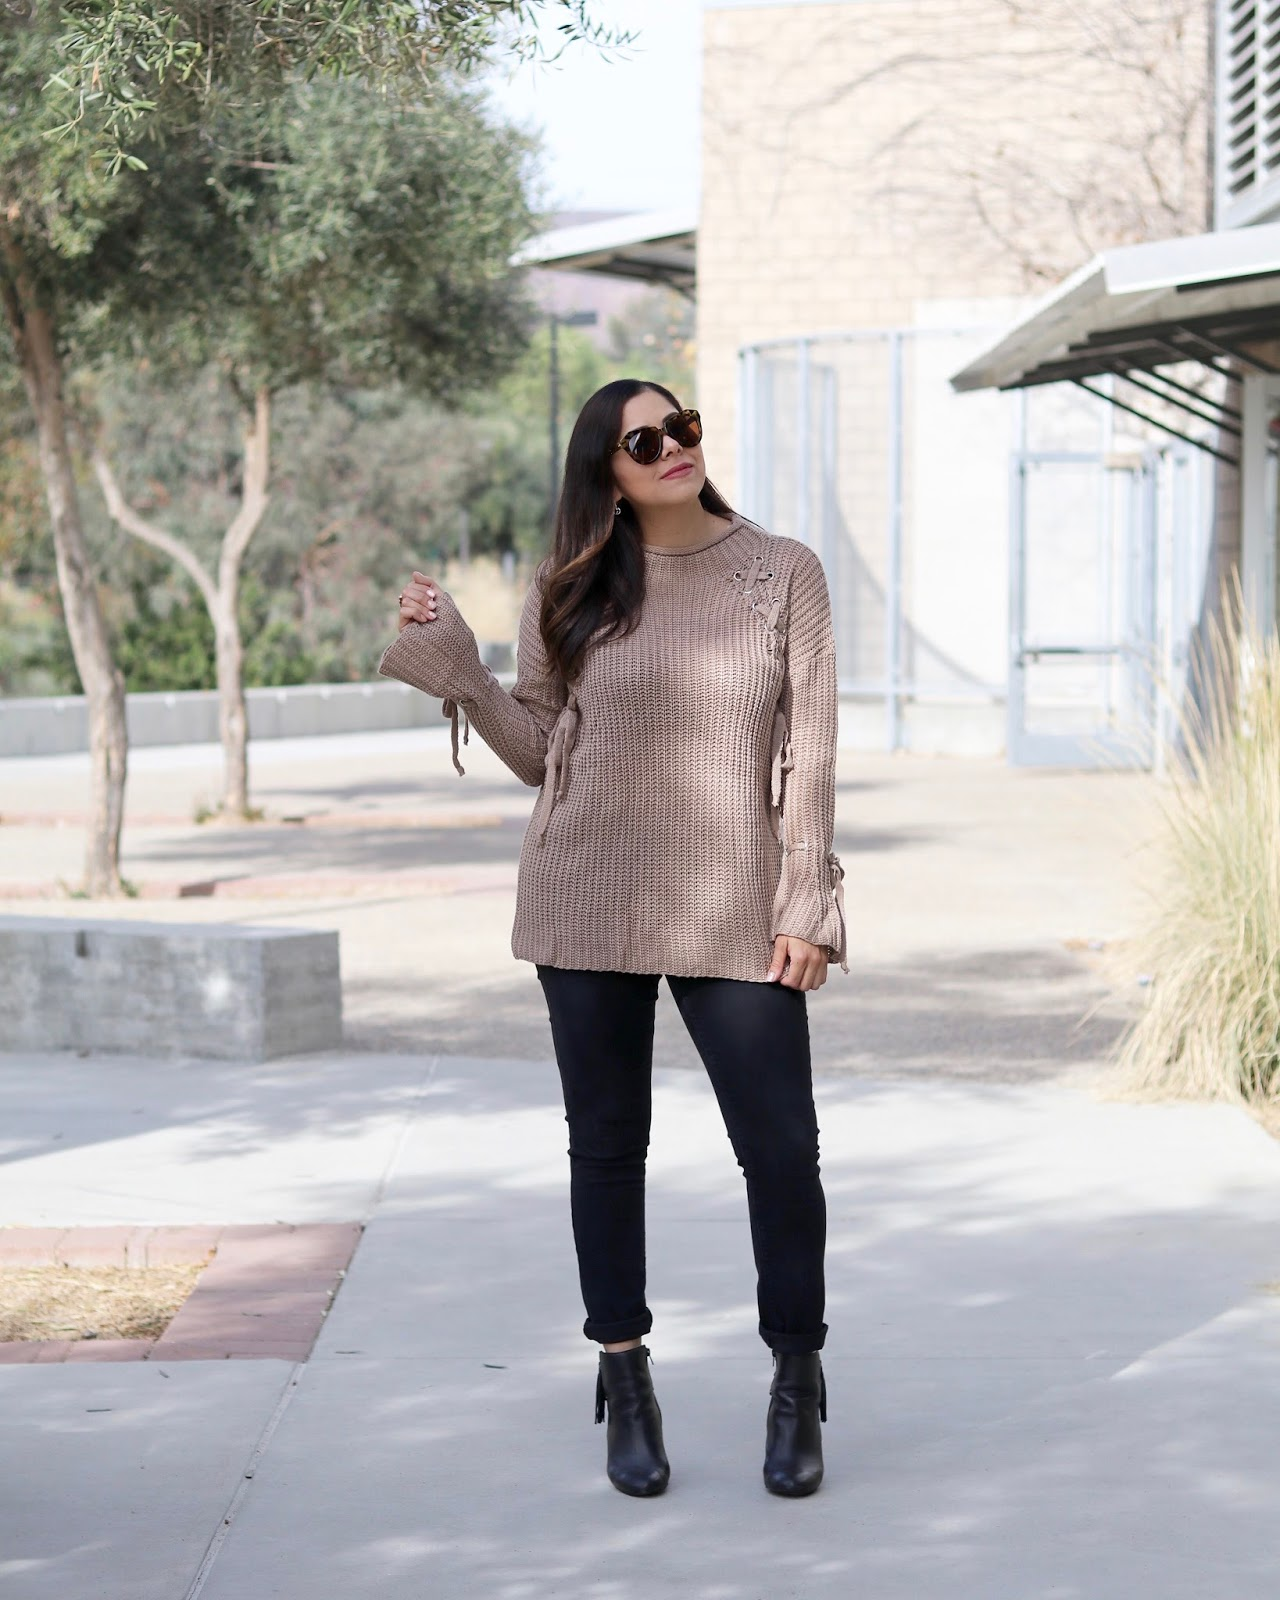 chic winter looks, chic mommy looks, san diego style bloggers